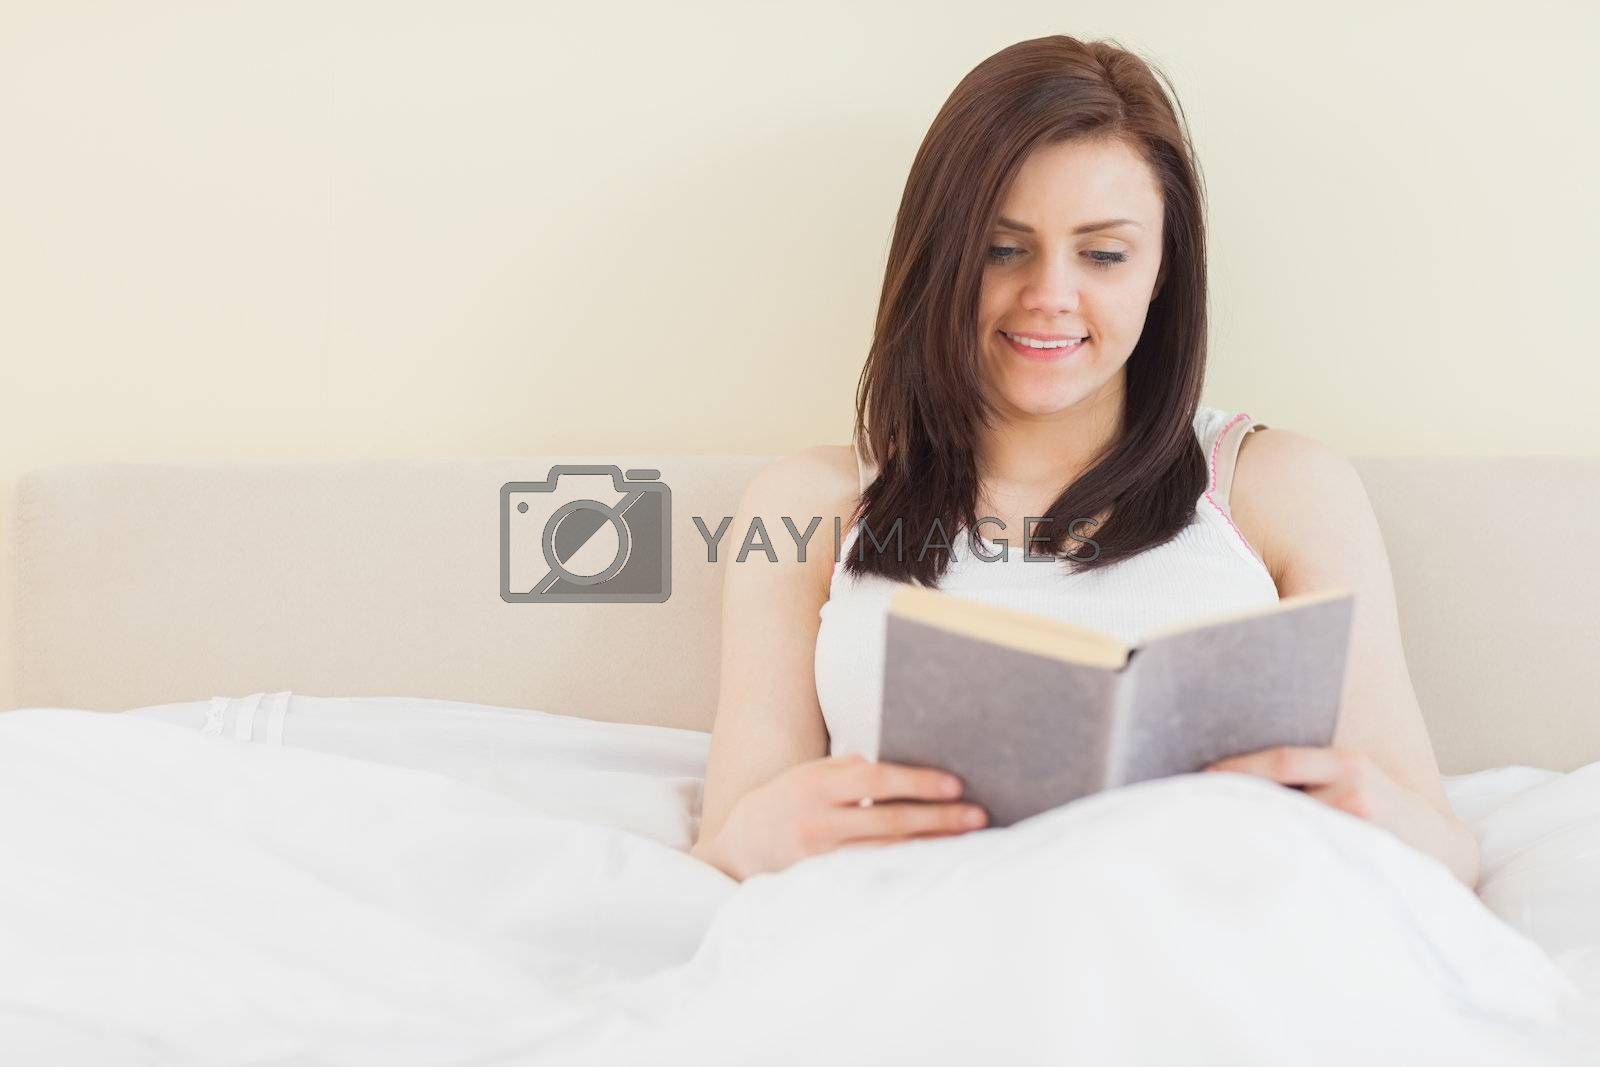 Smiling girl reading a book lying on bed by Wavebreakmedia